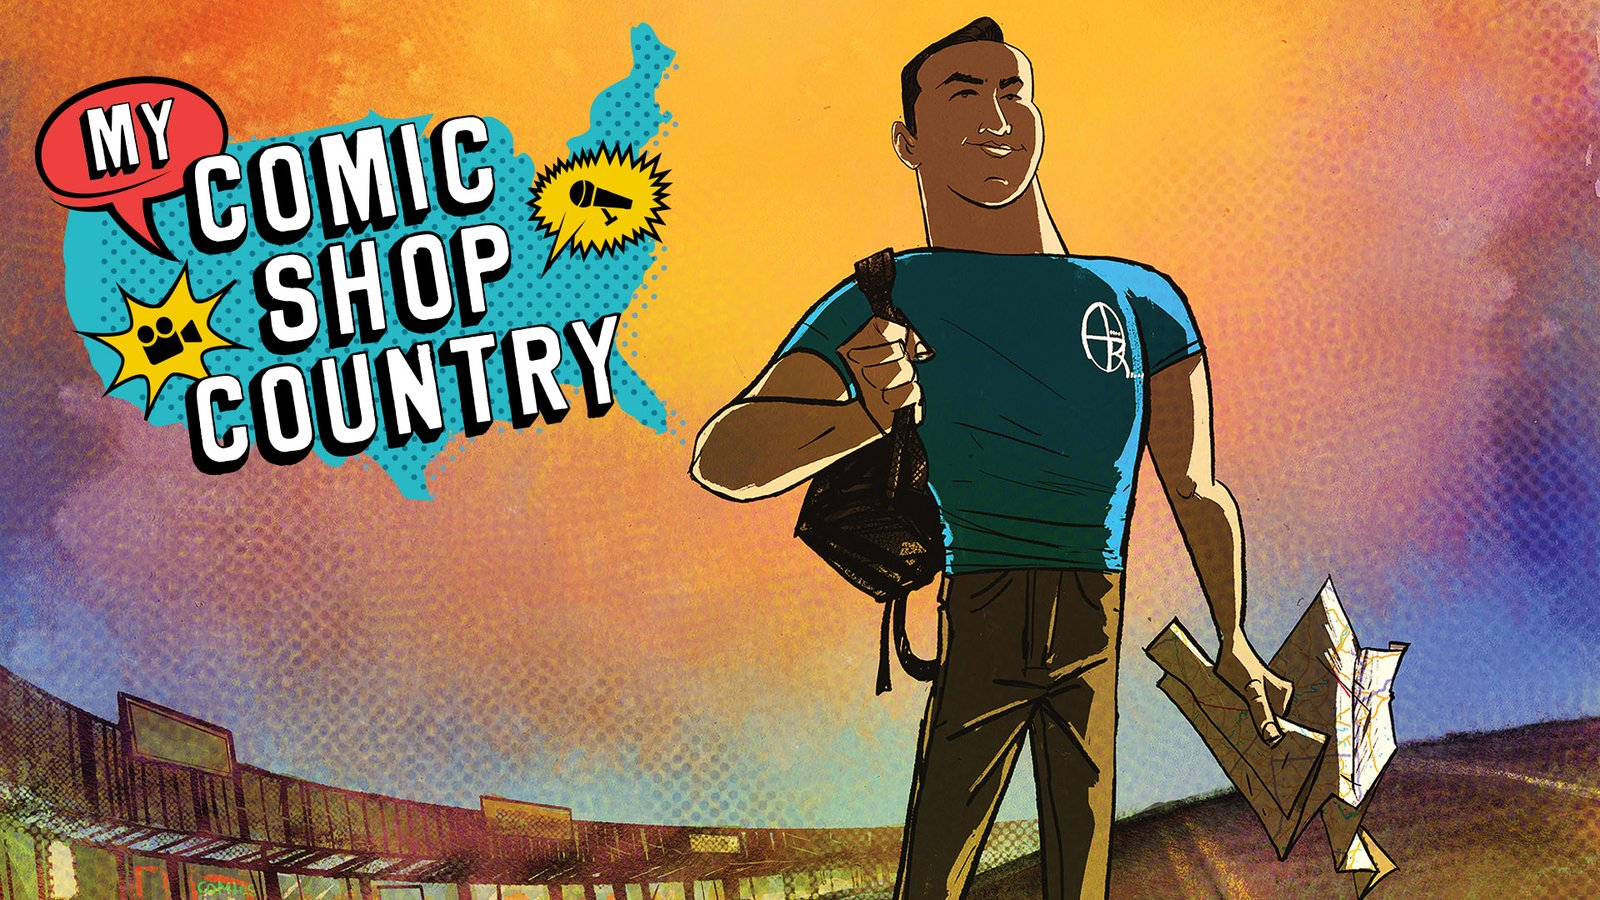 My Comic Shop Country